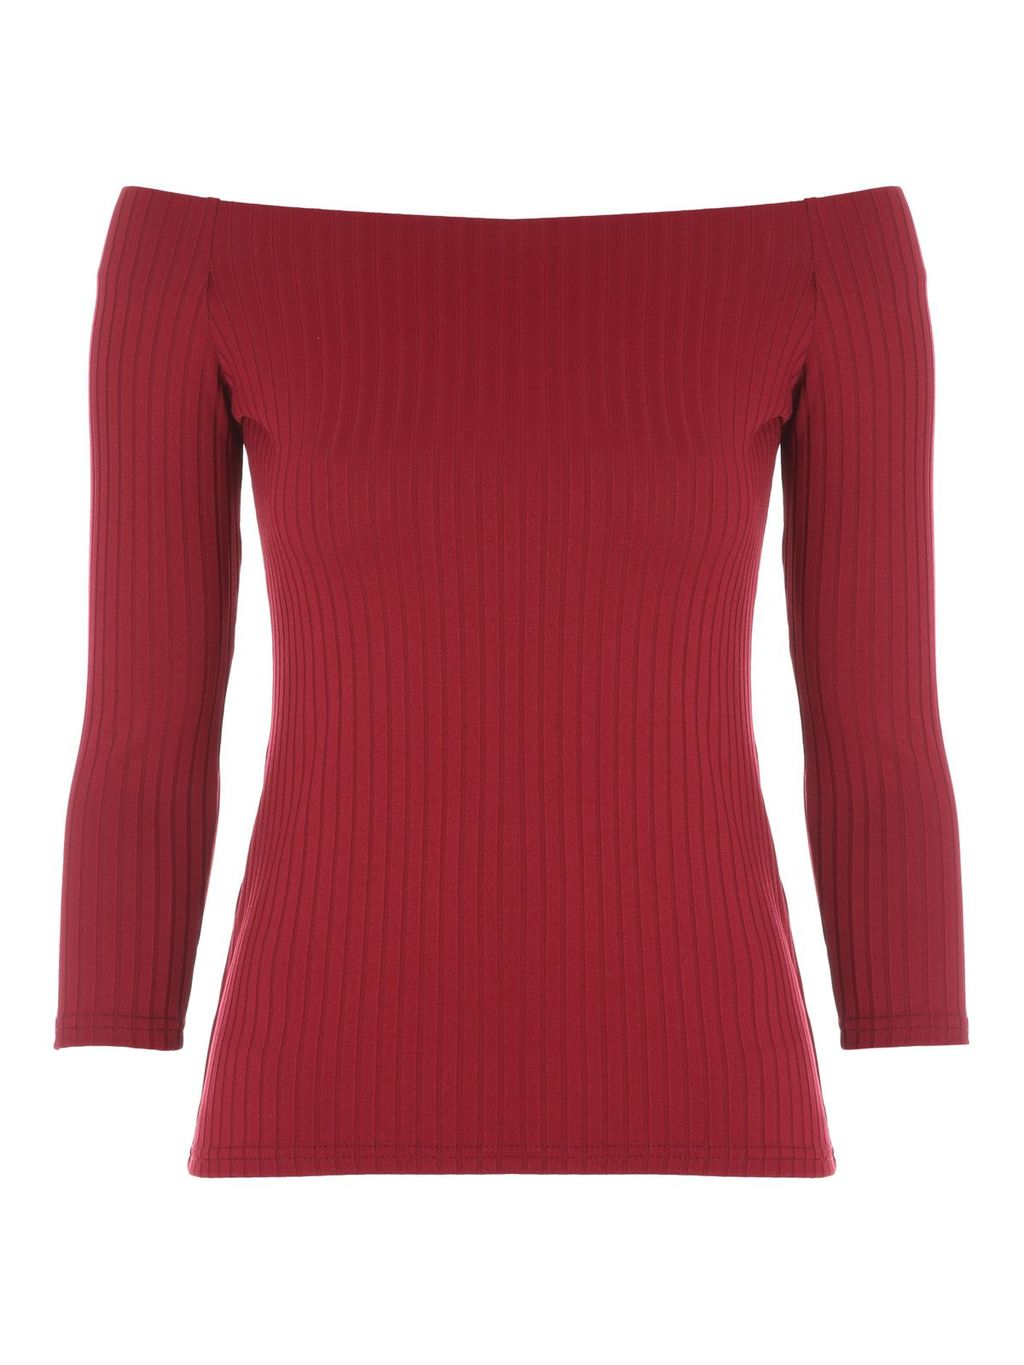 Ribbed Bardot Top, Berry - neckline: off the shoulder; pattern: plain; occasions: casual, creative work; length: standard; style: top; fibres: polyester/polyamide - stretch; fit: body skimming; sleeve length: 3/4 length; sleeve style: standard; texture group: jersey - clingy; pattern type: fabric; predominant colour: raspberry; season: a/w 2016